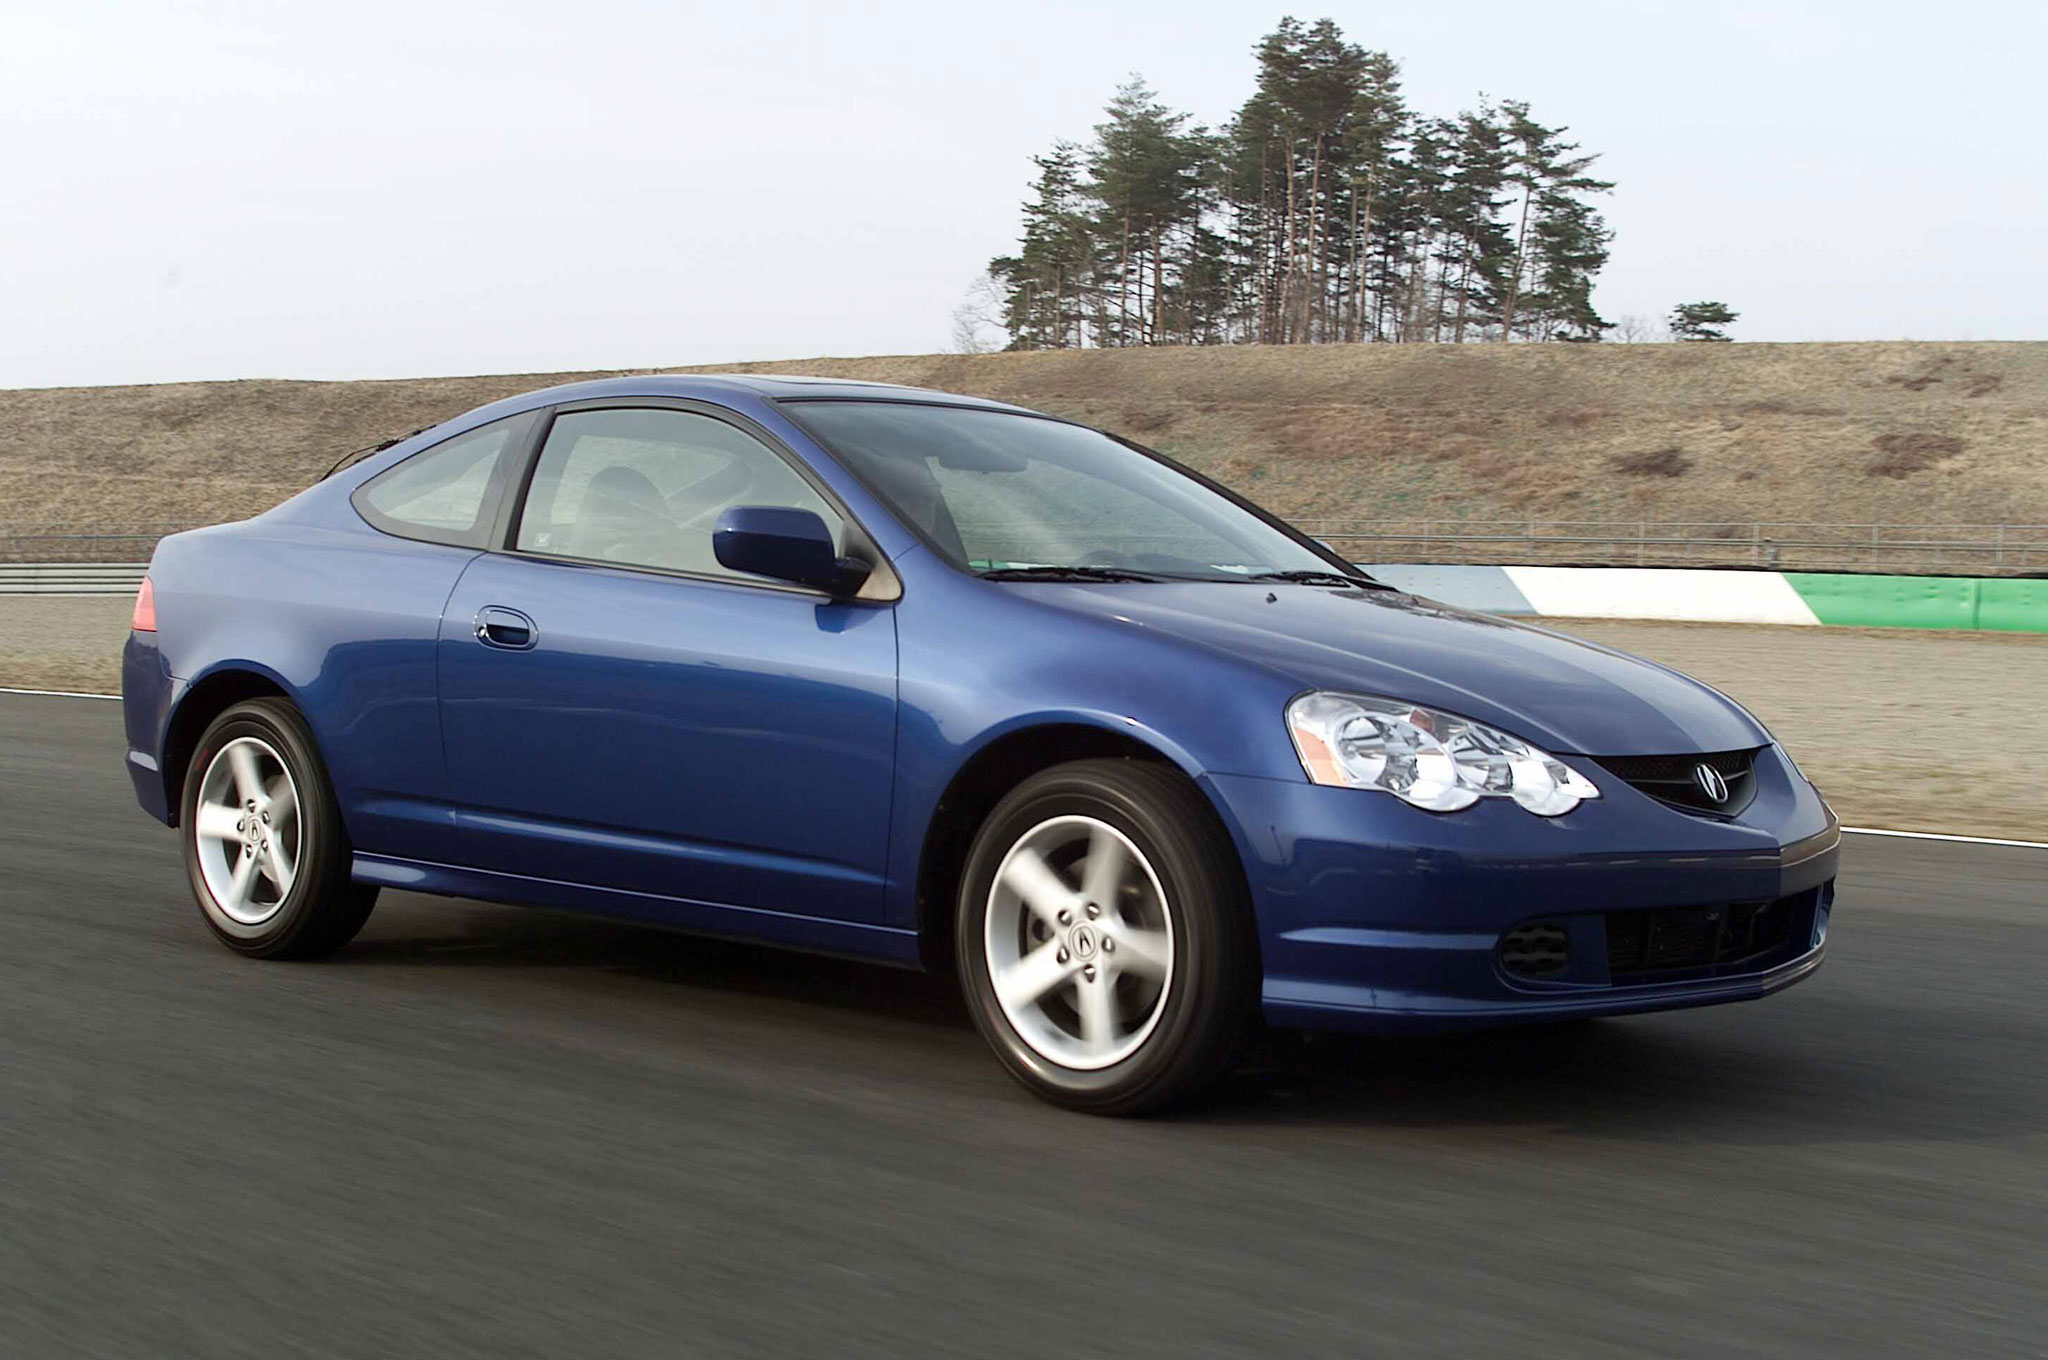 2002 Acura RSX Type S Front Three Quarter In Motion 01